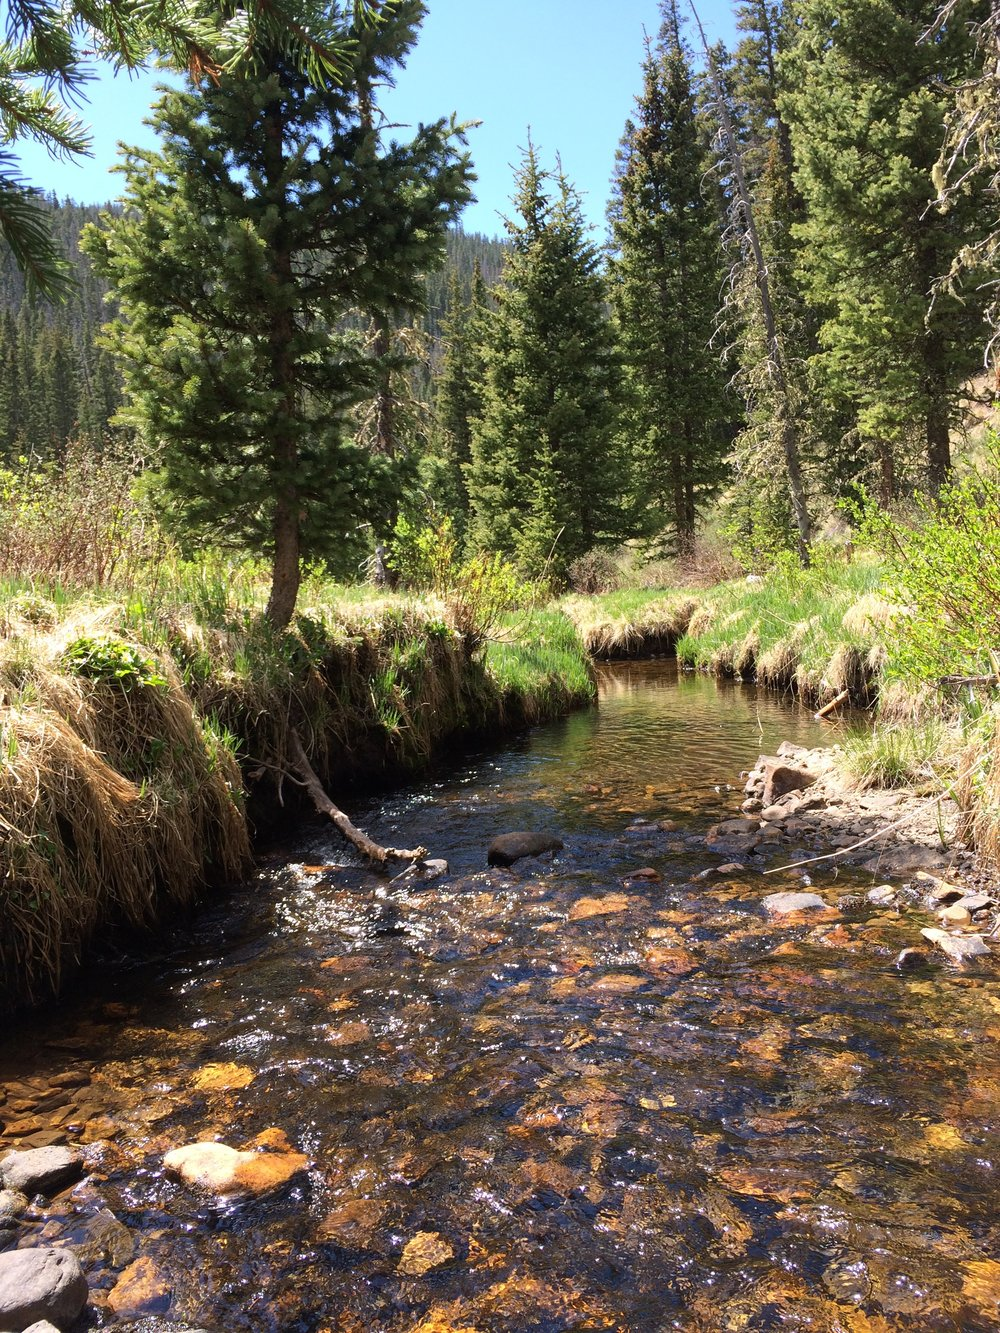 the catching spot - Pecos Wilderness, New Mexico